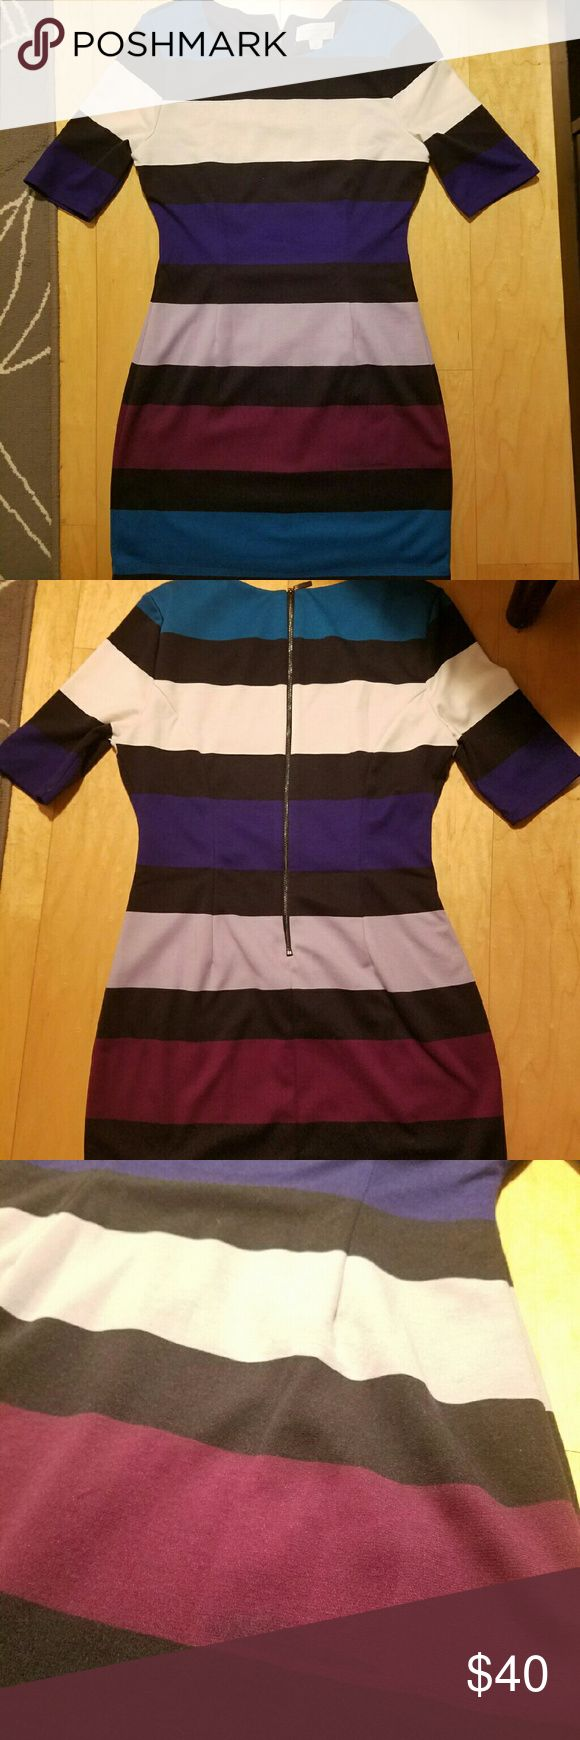 """3/4 Sleeve Striped Party Dress This dress is perfect for a winter party! It's a bit short for me (I'm 5'5"""") but wore with black leggings. Slight discoloration in one of the stripes (see photo) but is not noticeable unless you look closely. Jessica Simpson Dresses Mini"""